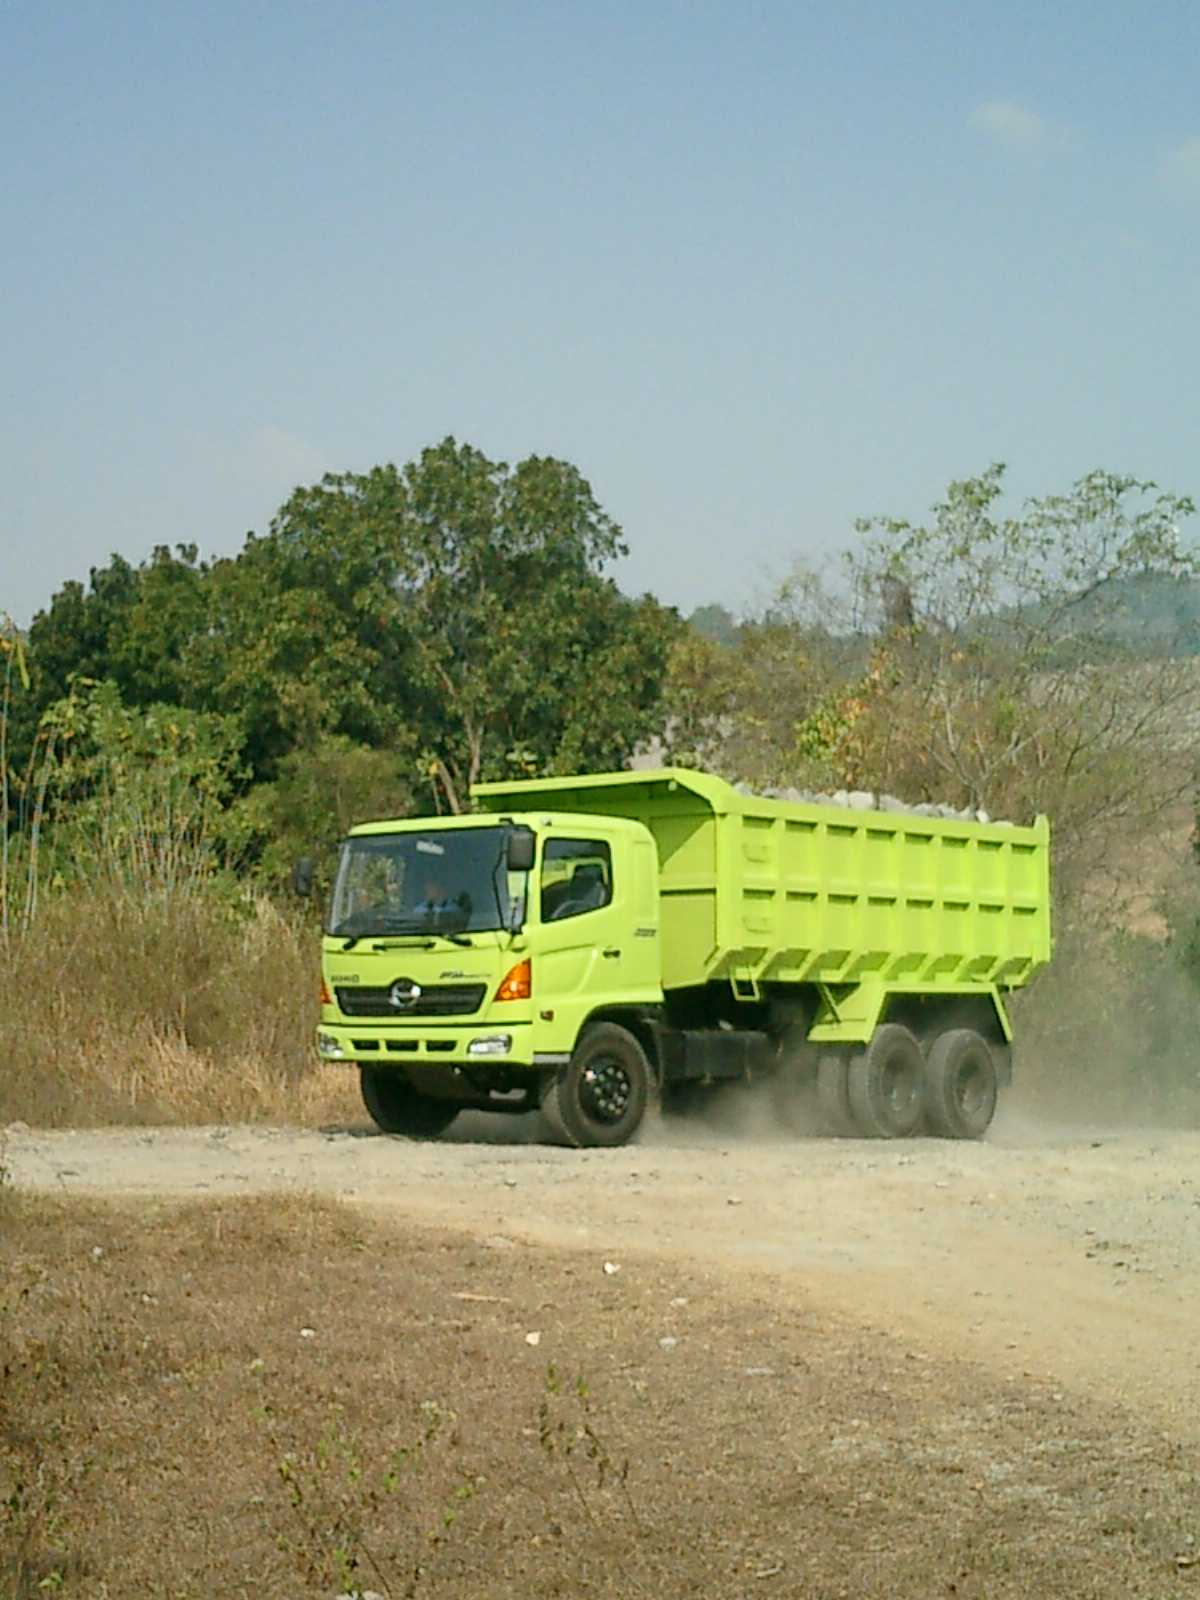 Hino Truck, Bspo06, Dust, Green, Land, HQ Photo